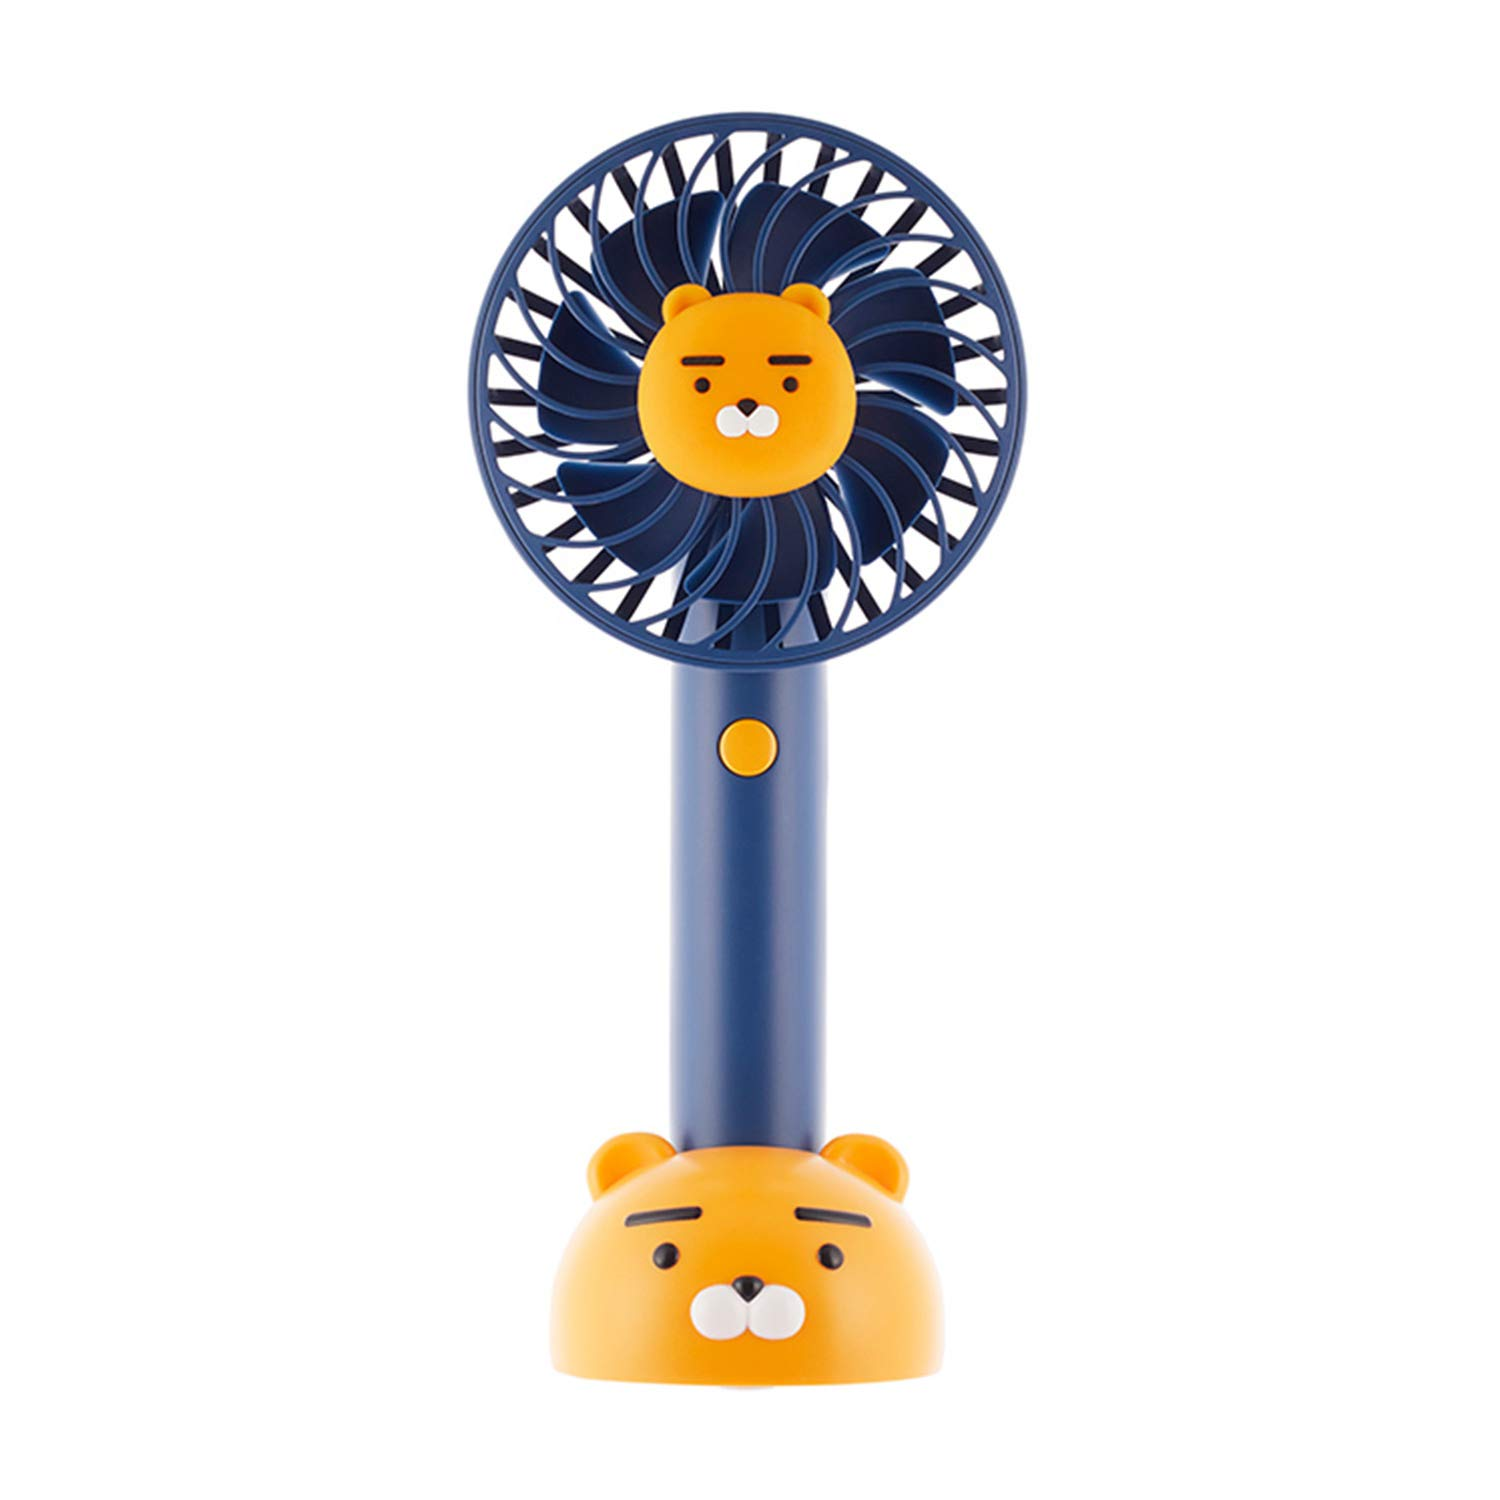 KAKAO FRIENDS Official- Portable Handheld Fan with Detachable Base, Rechargeable USB Charging 2200mAh Battery, Adjustable 3 Speed (Ryan Navy)